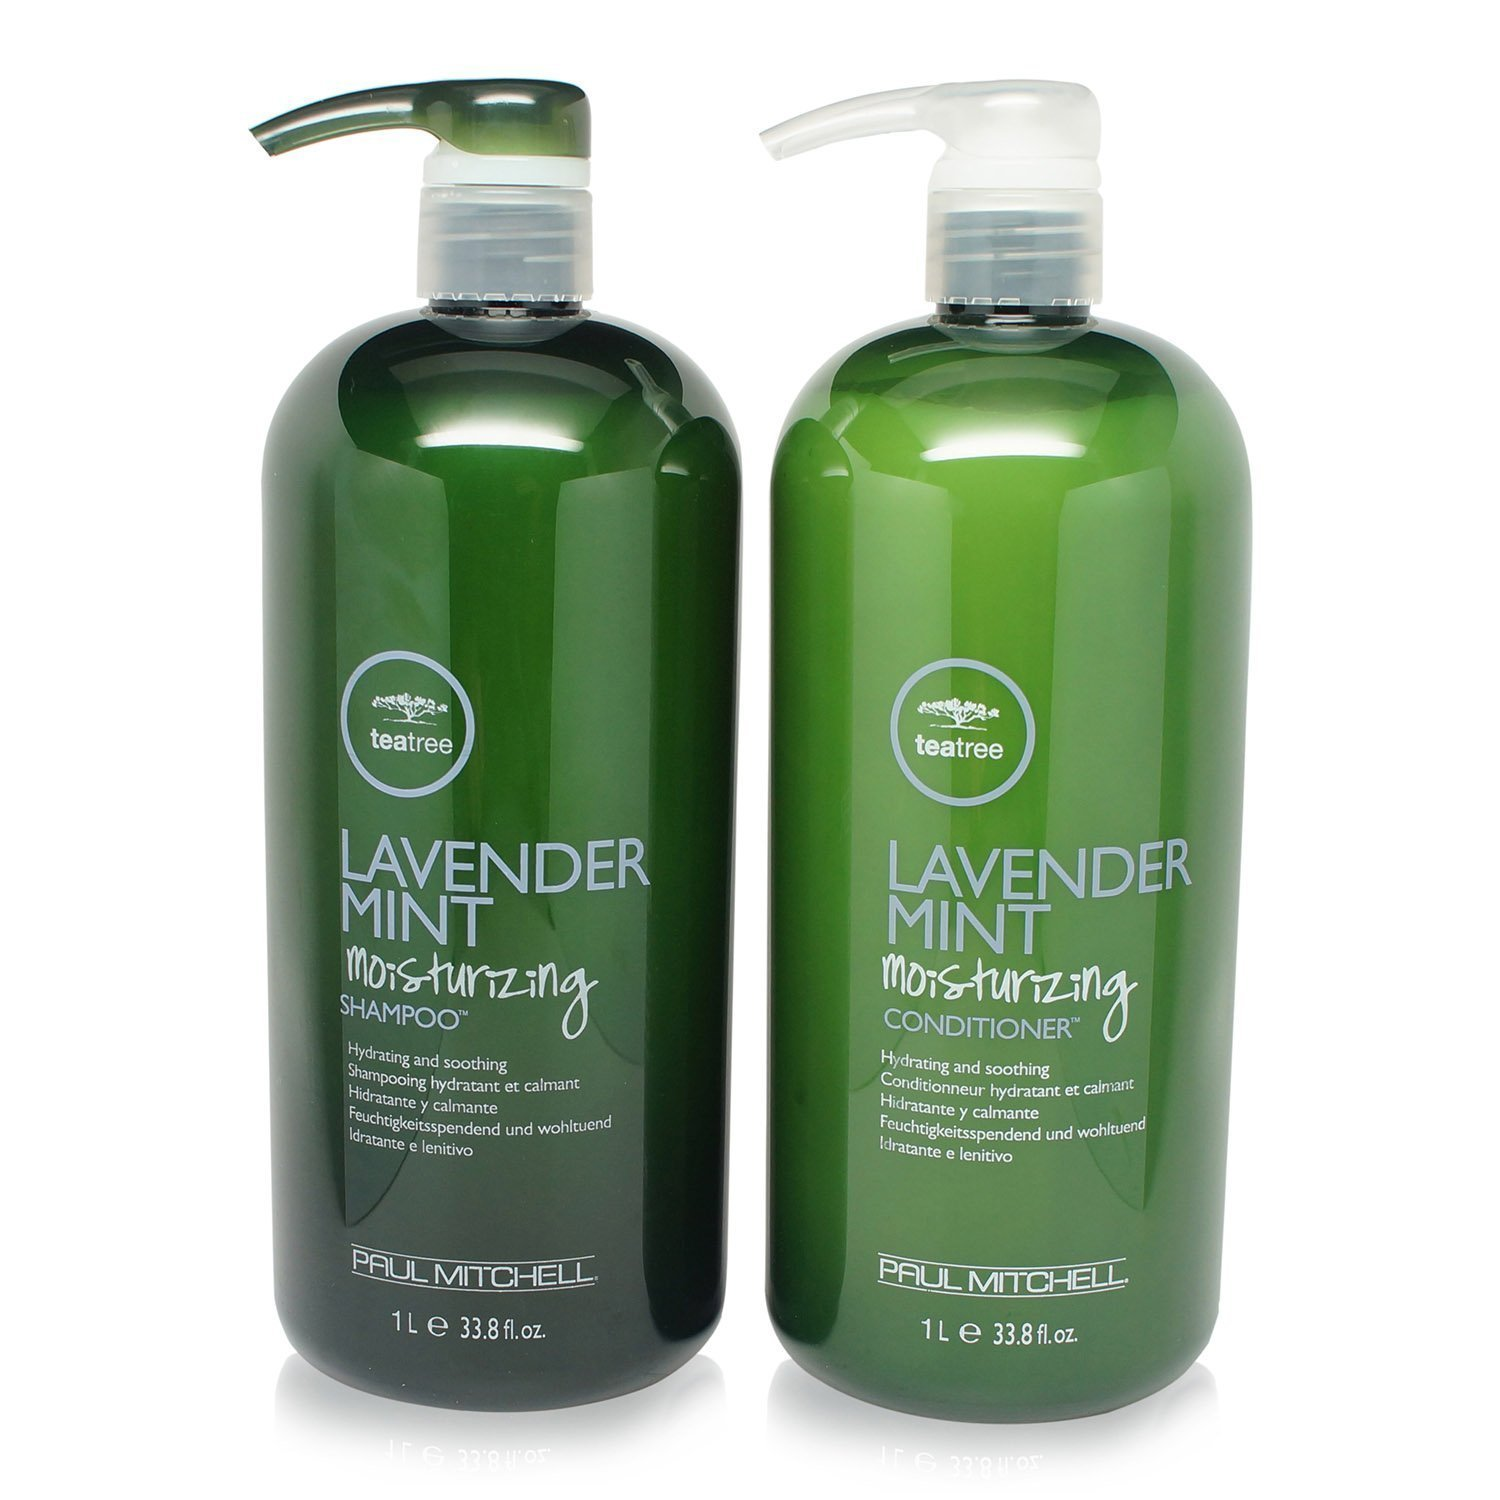 paul mitchell tea tree lavender mint shampoo and conditioner reviews